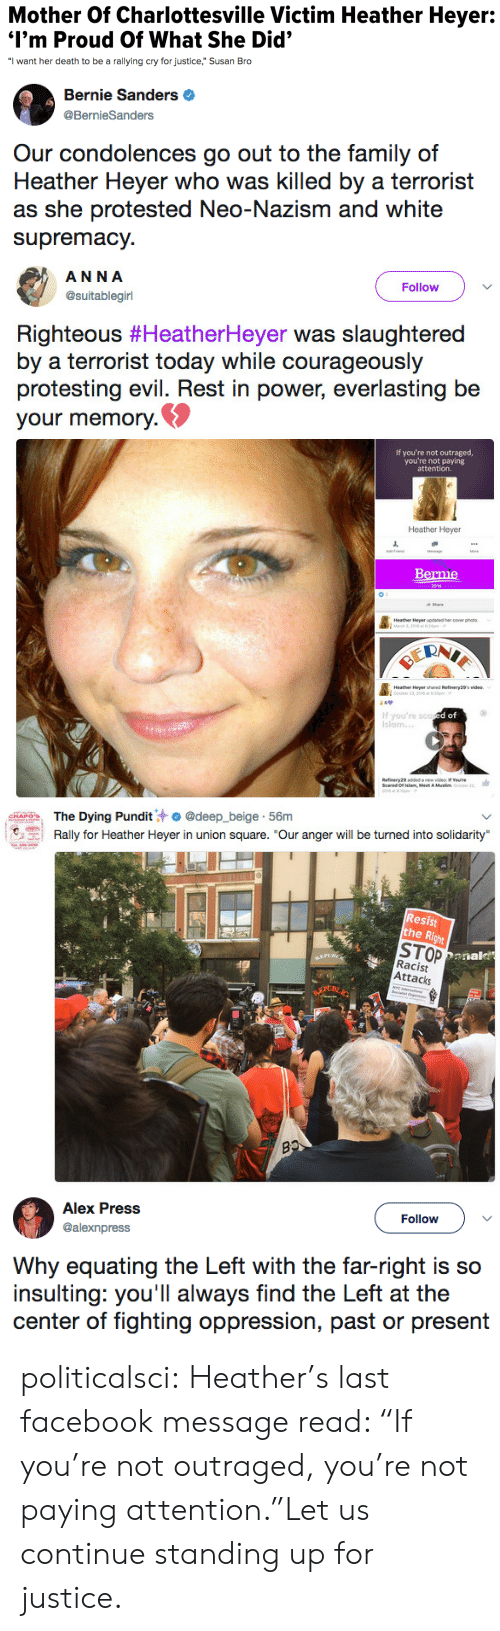 "Anna, Bernie Sanders, and Facebook: Mother Of Charlottesville Victim Heather Heyer:  I'm Proud Of What She Did'  ""I want her death to be a rallying cry for justice,"" Susan Bro   Bernie Sanders  @BernieSanders  Our condolences go out to the family of  Heather Heyer who was killed by a terrorist  as she protested Neo-Nazism and white  supremacy.   ANNA  @suitablegirl  Follow  Righteous #HeatherHeyer was slaughtered  by a terrorist today while courageously  protesting evil. Rest in power, everlasting be  your memory.  If you're not outraged,  you're not paying  attention.  Heather Heyer  Bernie  Heathee Heyer updaned ercover phs  If you're sco  Islam.  d of  slam, Meet A   The Dying Pundit汁. @deep.-beige-56m  Rally for Heather Heyer in union square. ""Our anger will be turned into solidarity  emarin.  Resist  he R  STOP  Racist  Attacks  Donal   Alex Press  @alexnpress  Follow  Why equating the Left with the far-right is so  insulting: you'll always find the Left at the  center of fighting oppression, past or present politicalsci:  Heather's last facebook message read: ""If you're not outraged, you're not paying attention.""Let us continue standing up for justice."